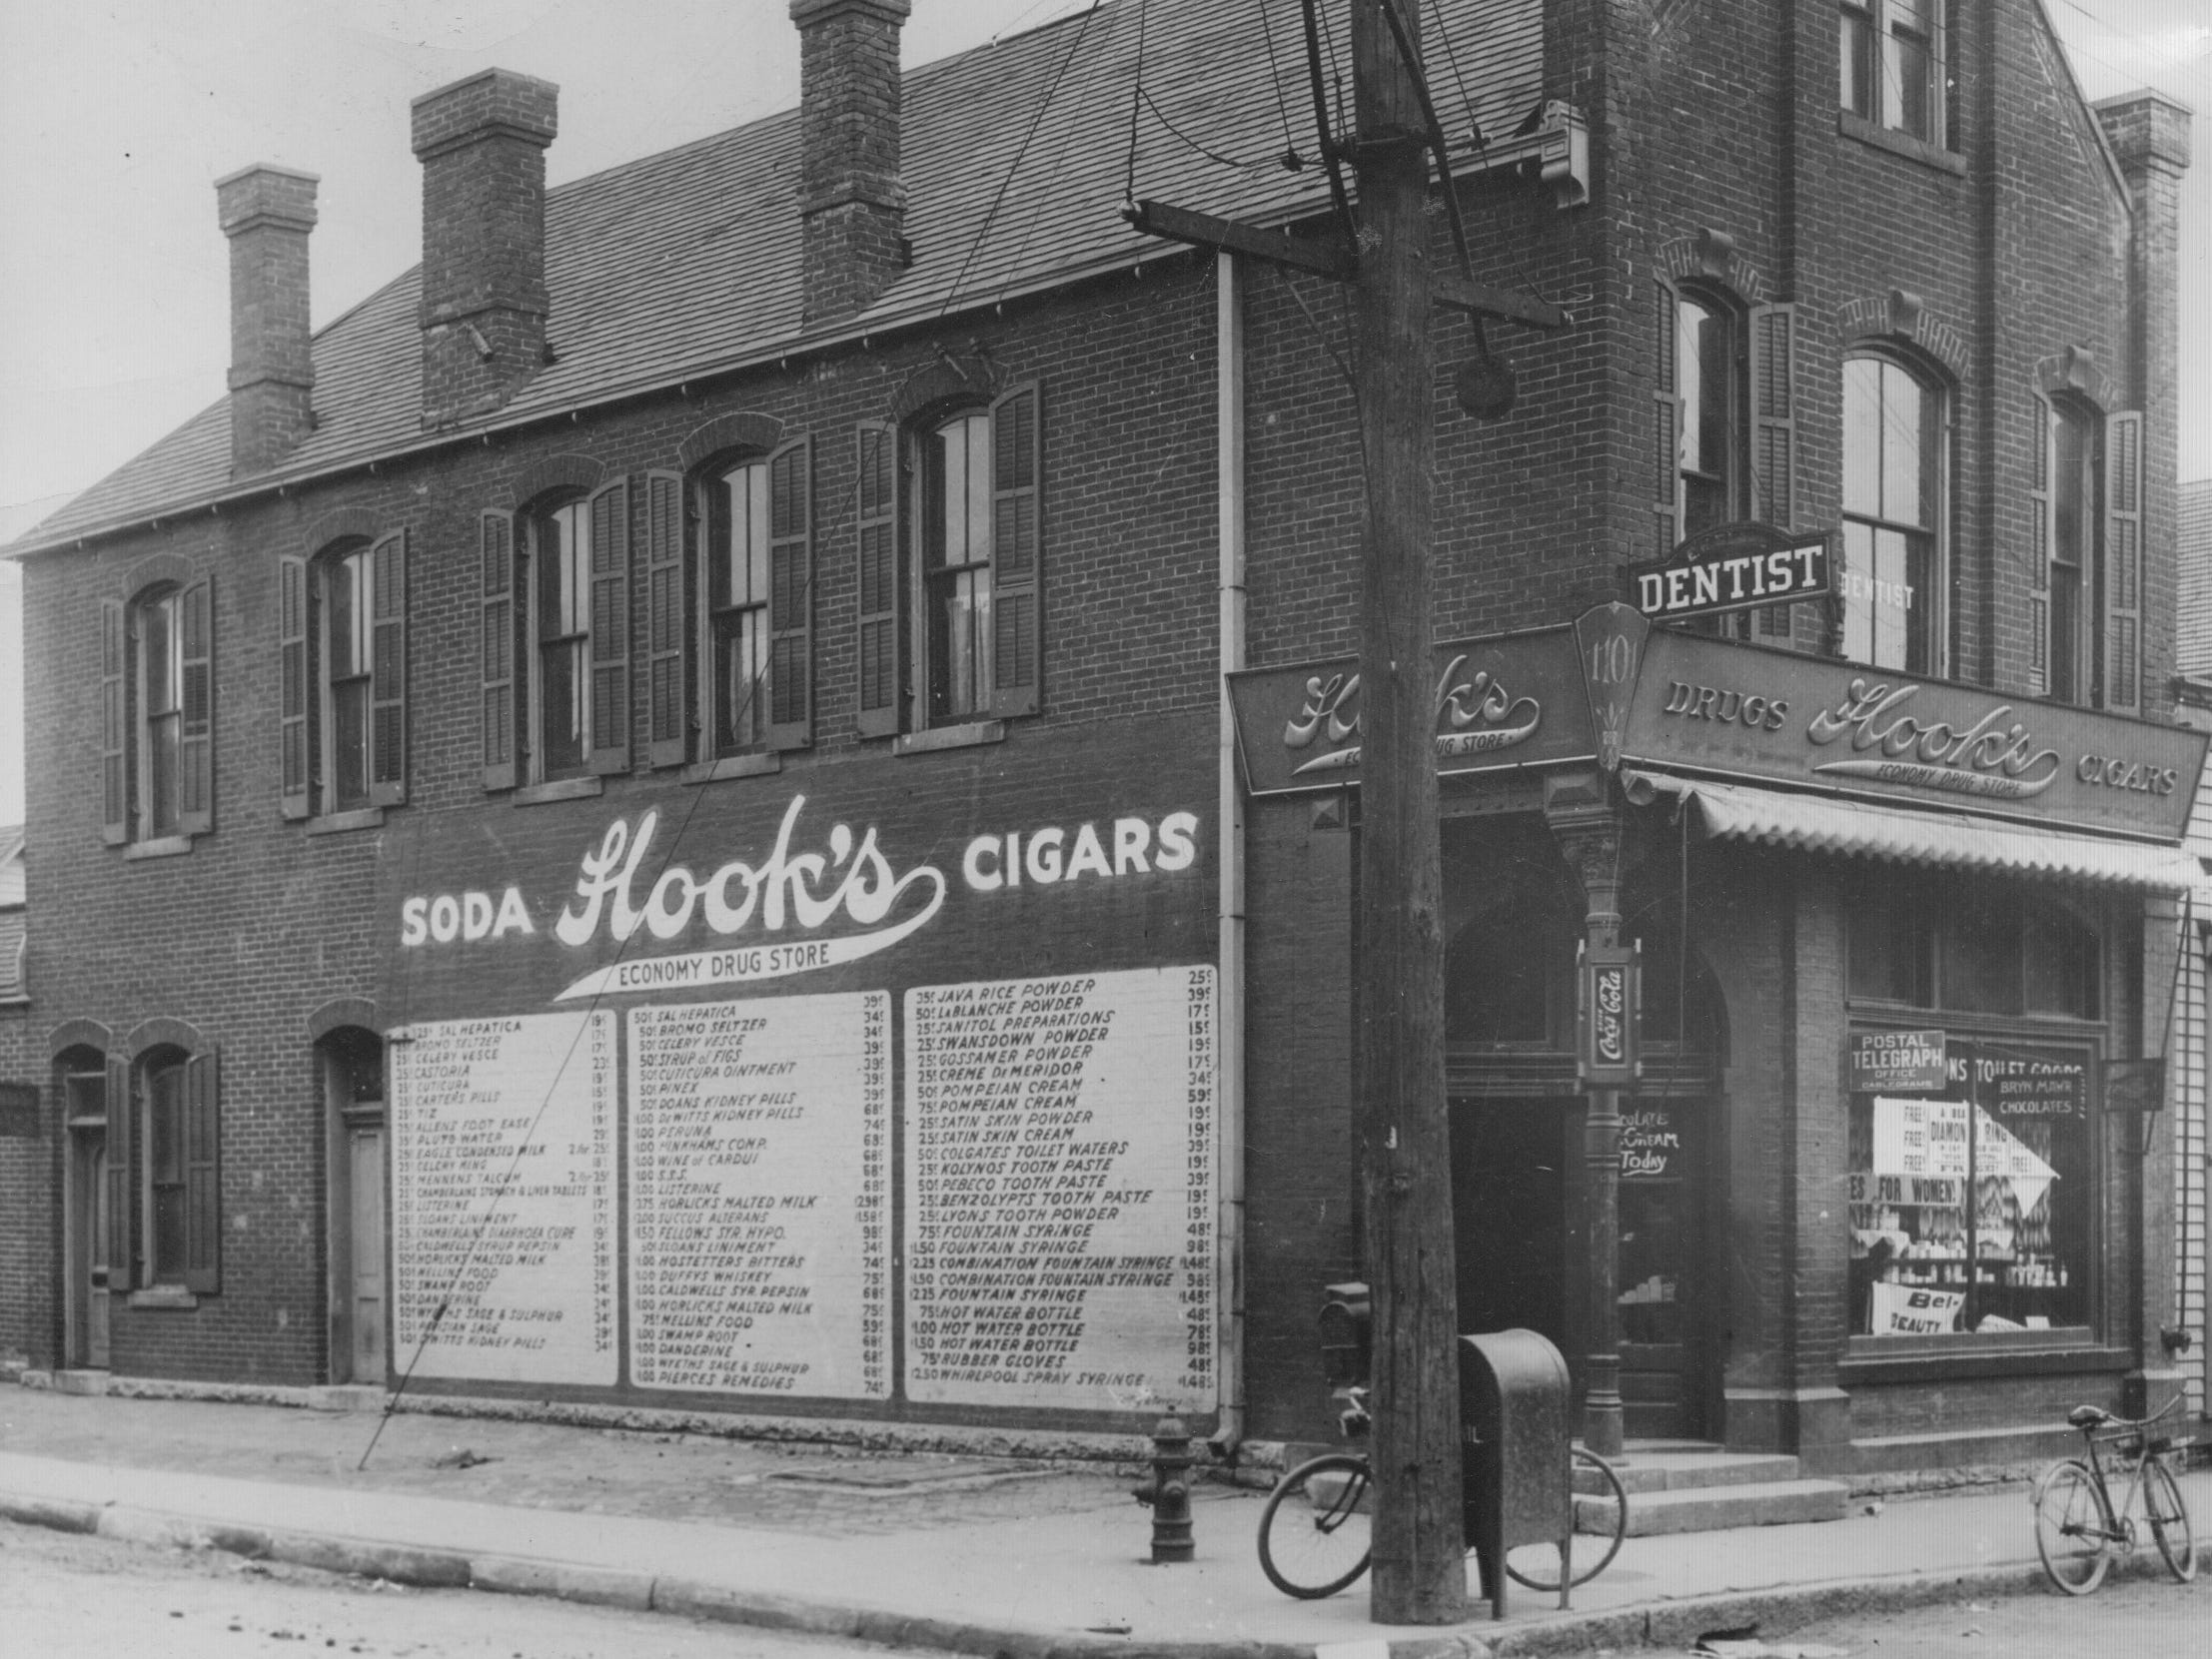 The first Hook Drug Store was at the intersection of Southeast and Prospect Streets in 1900 until it was razed in 1941.